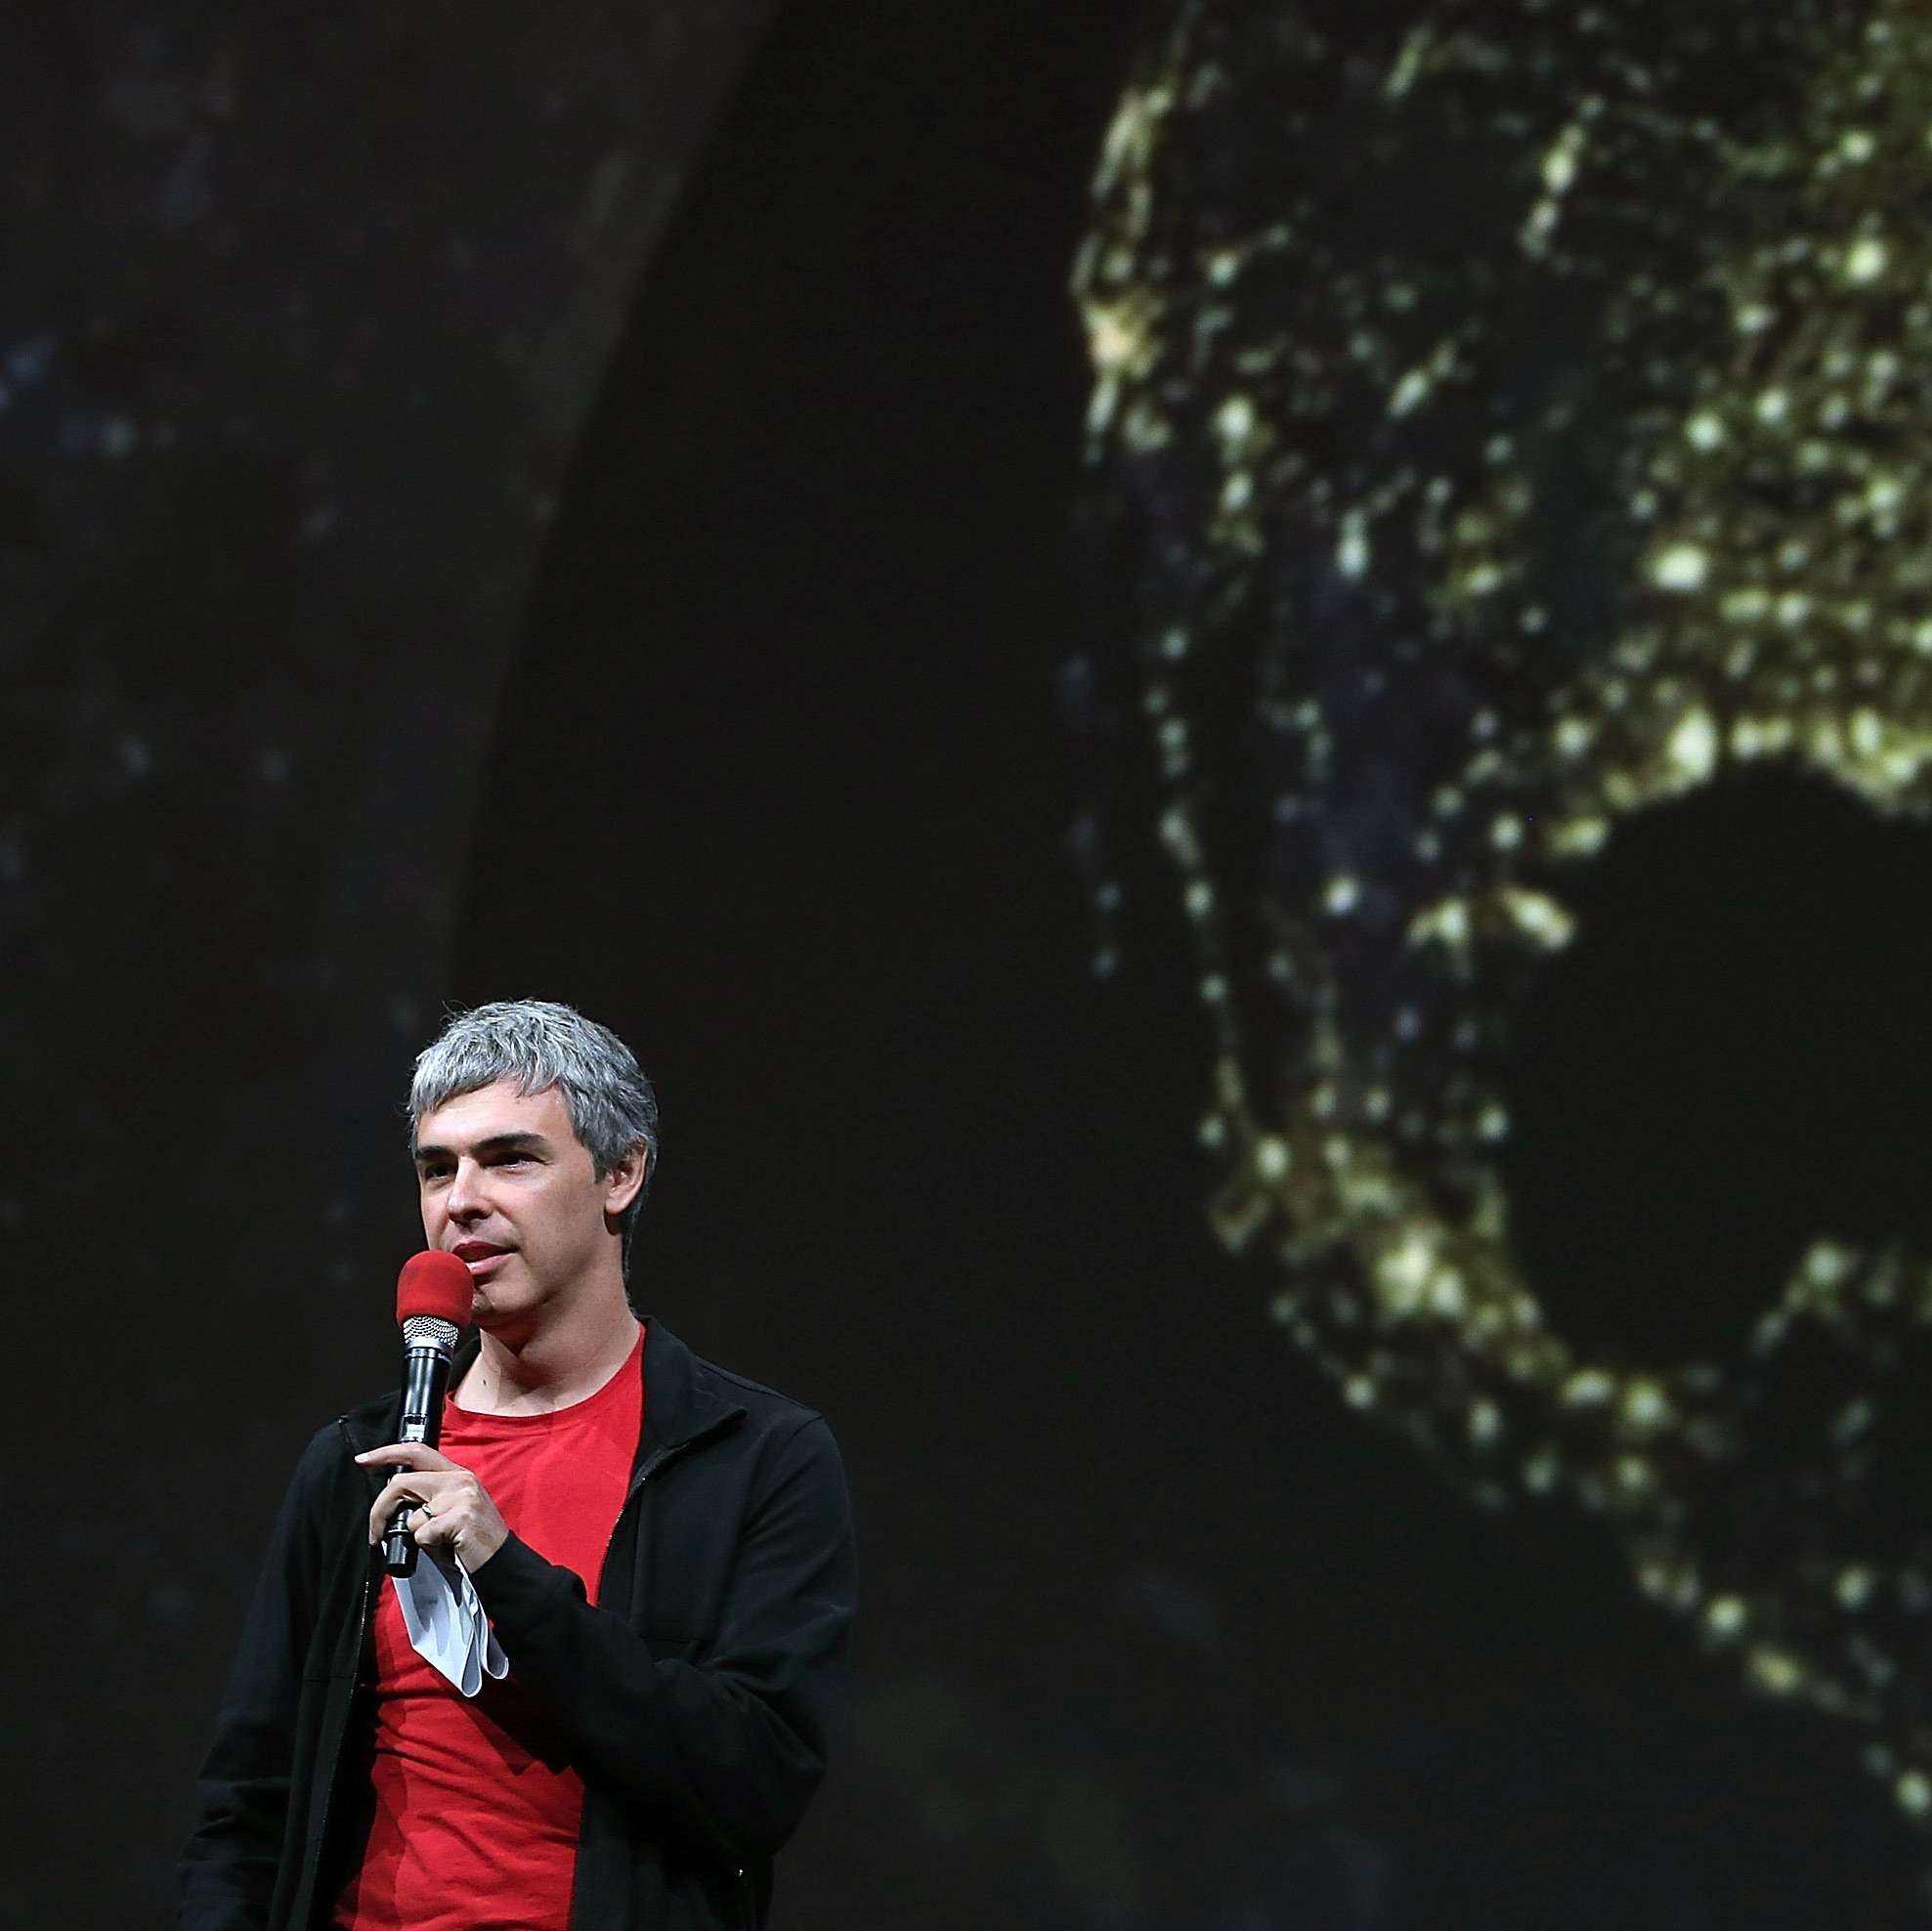 Larry Page, Google co-founder and CEO, speaks Wednesday at the Google I/O developers conference in San Francisco. The new version of Google Maps incorporates images from Google Earth.